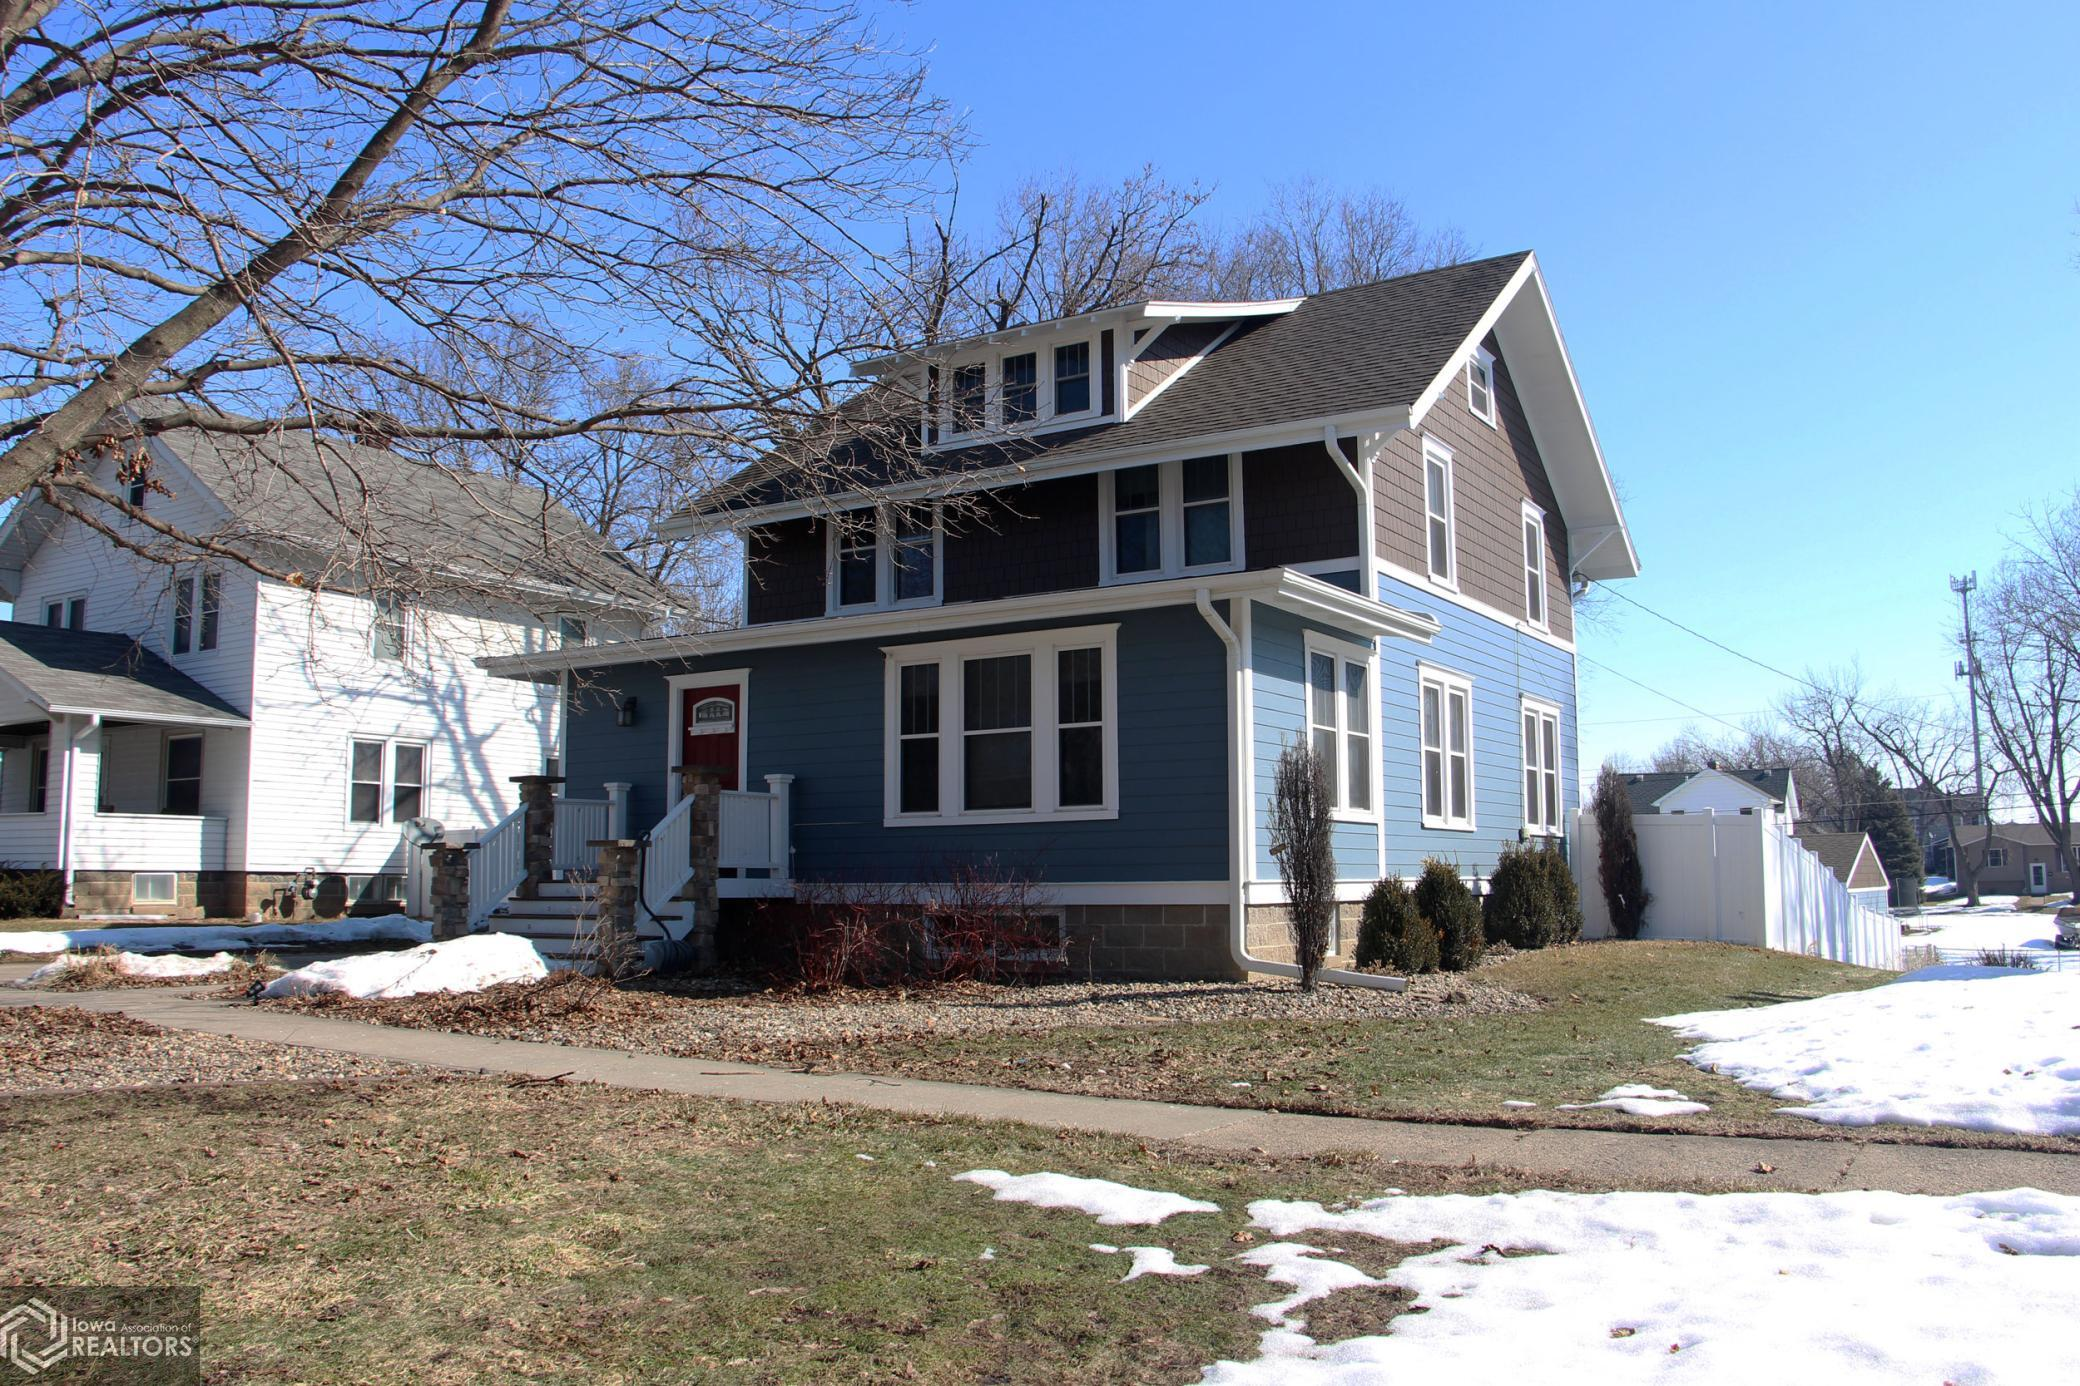 914 Center, Grinnell, Iowa 50112-1961, 4 Bedrooms Bedrooms, ,1 BathroomBathrooms,Single Family,For Sale,Center,5720148